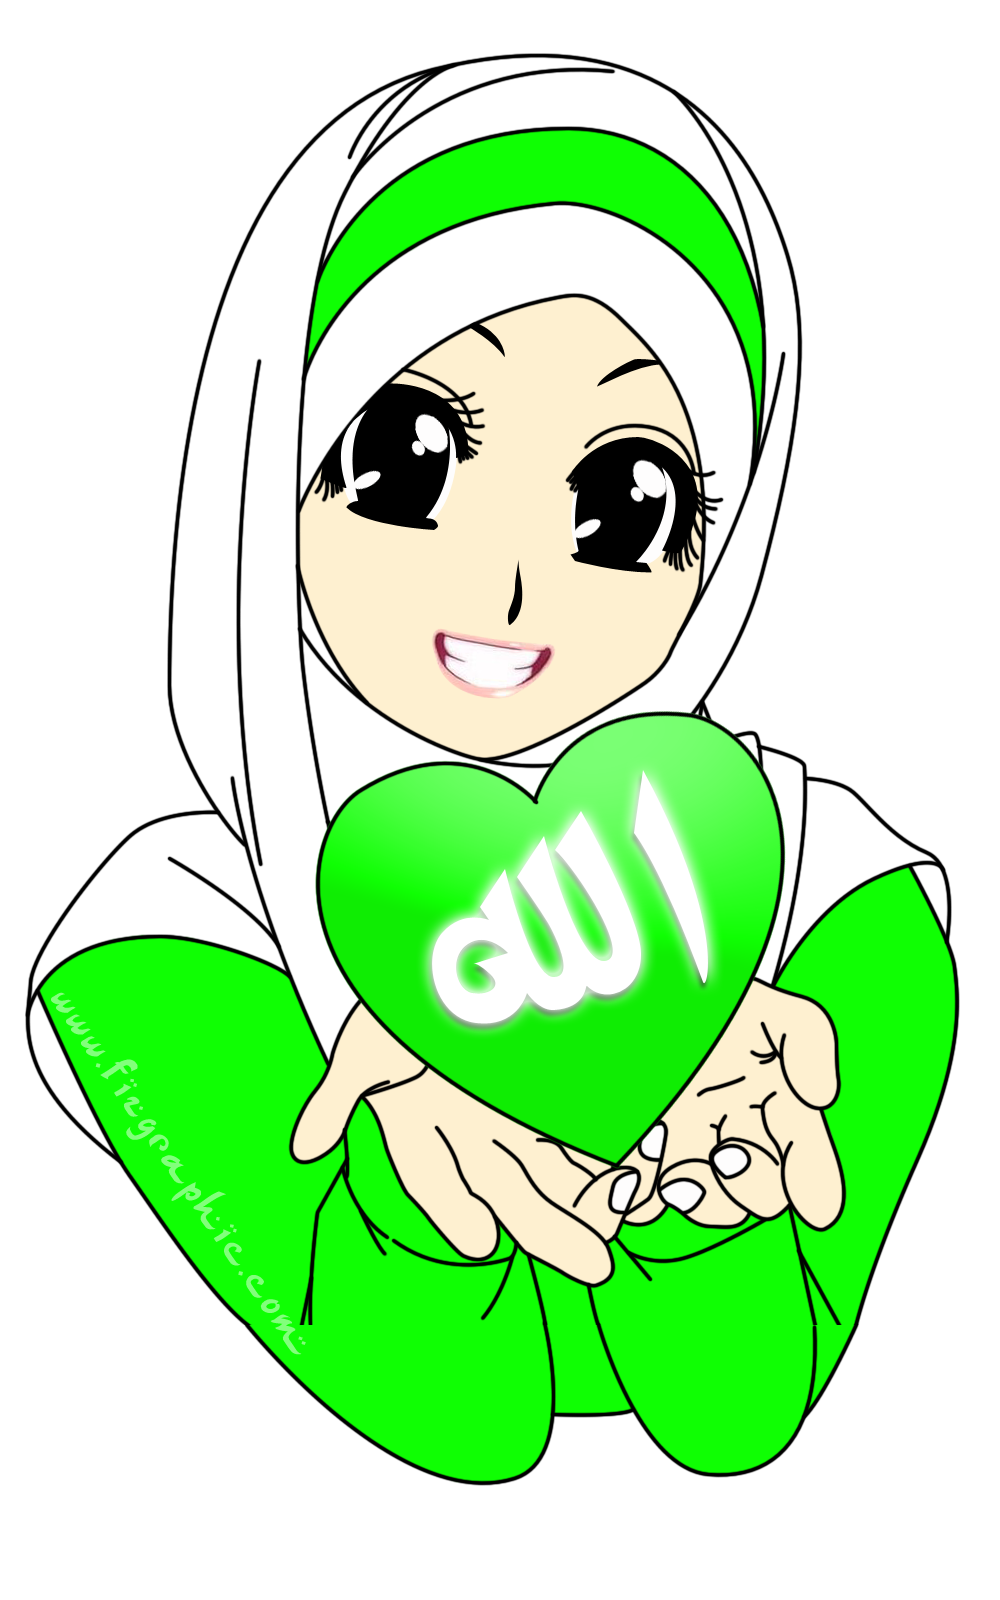 Cartoon islam. ahhhh hijau PNG (With images) Anime